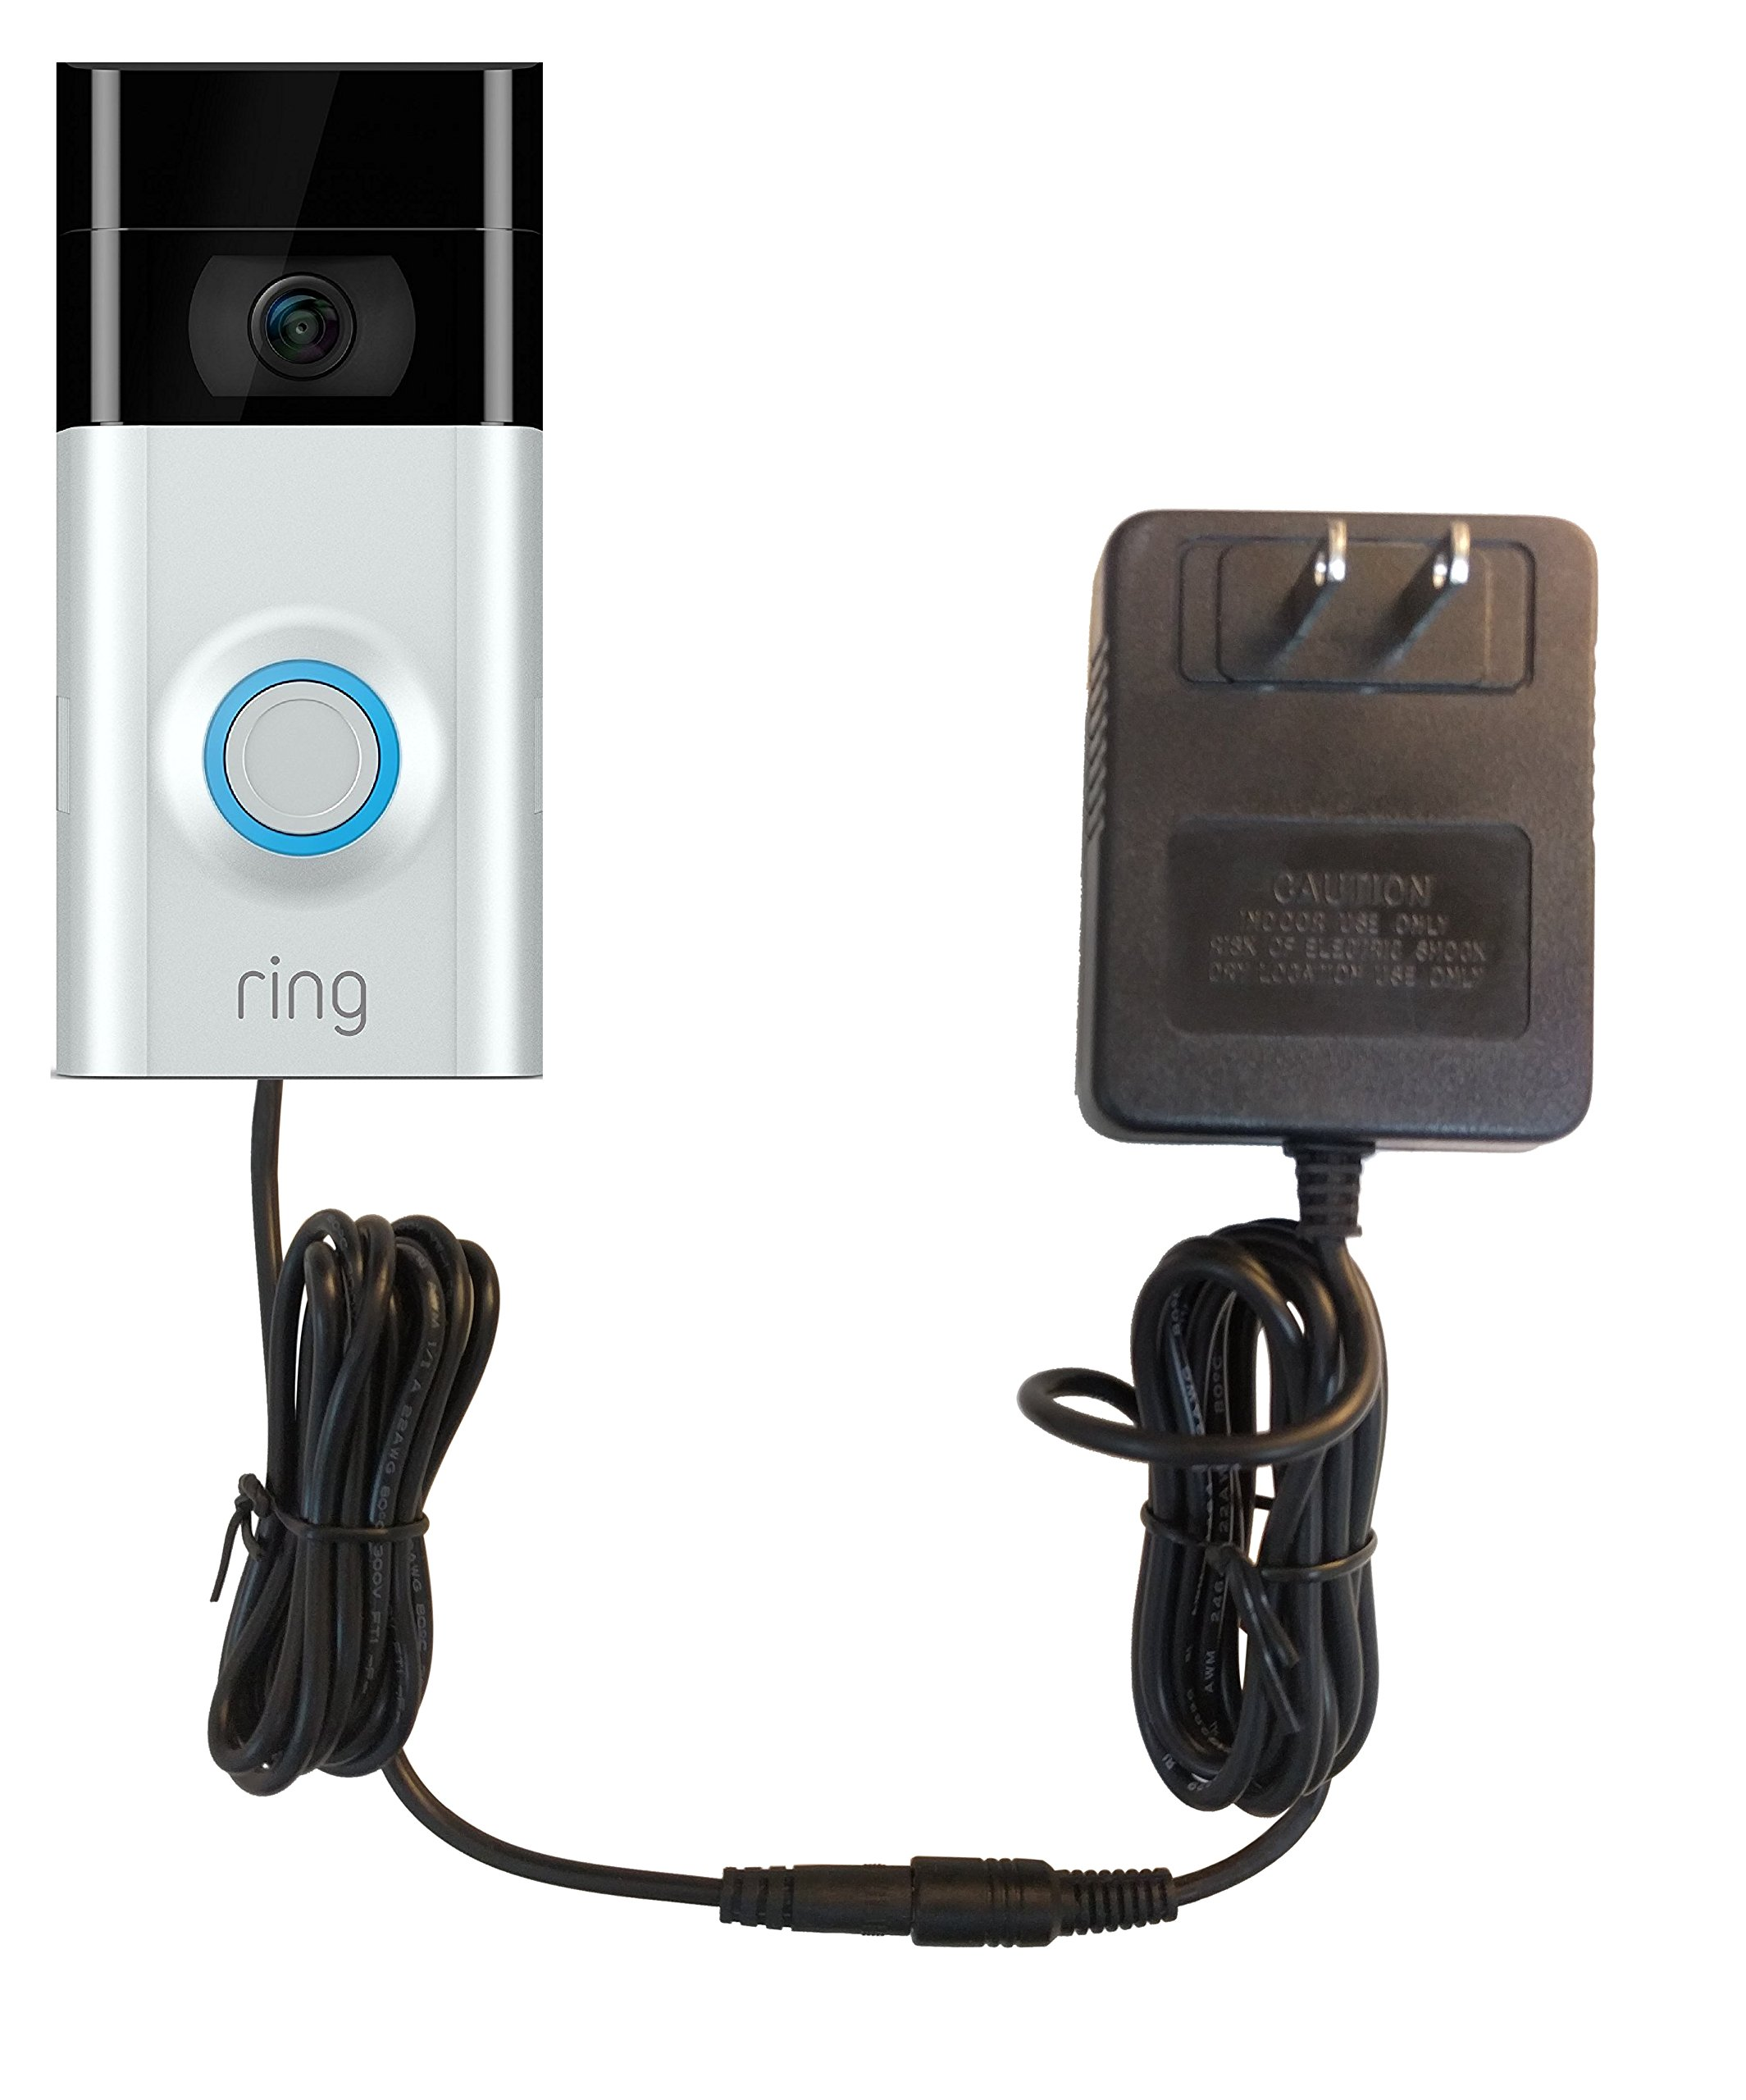 OhmKat Video Doorbell Power Supply - Compatible with Ring Video Doorbell 2 - Needs No Existing Wiring - Battery Charger, Transformer, Adapter, Power Kit & Supply All In One